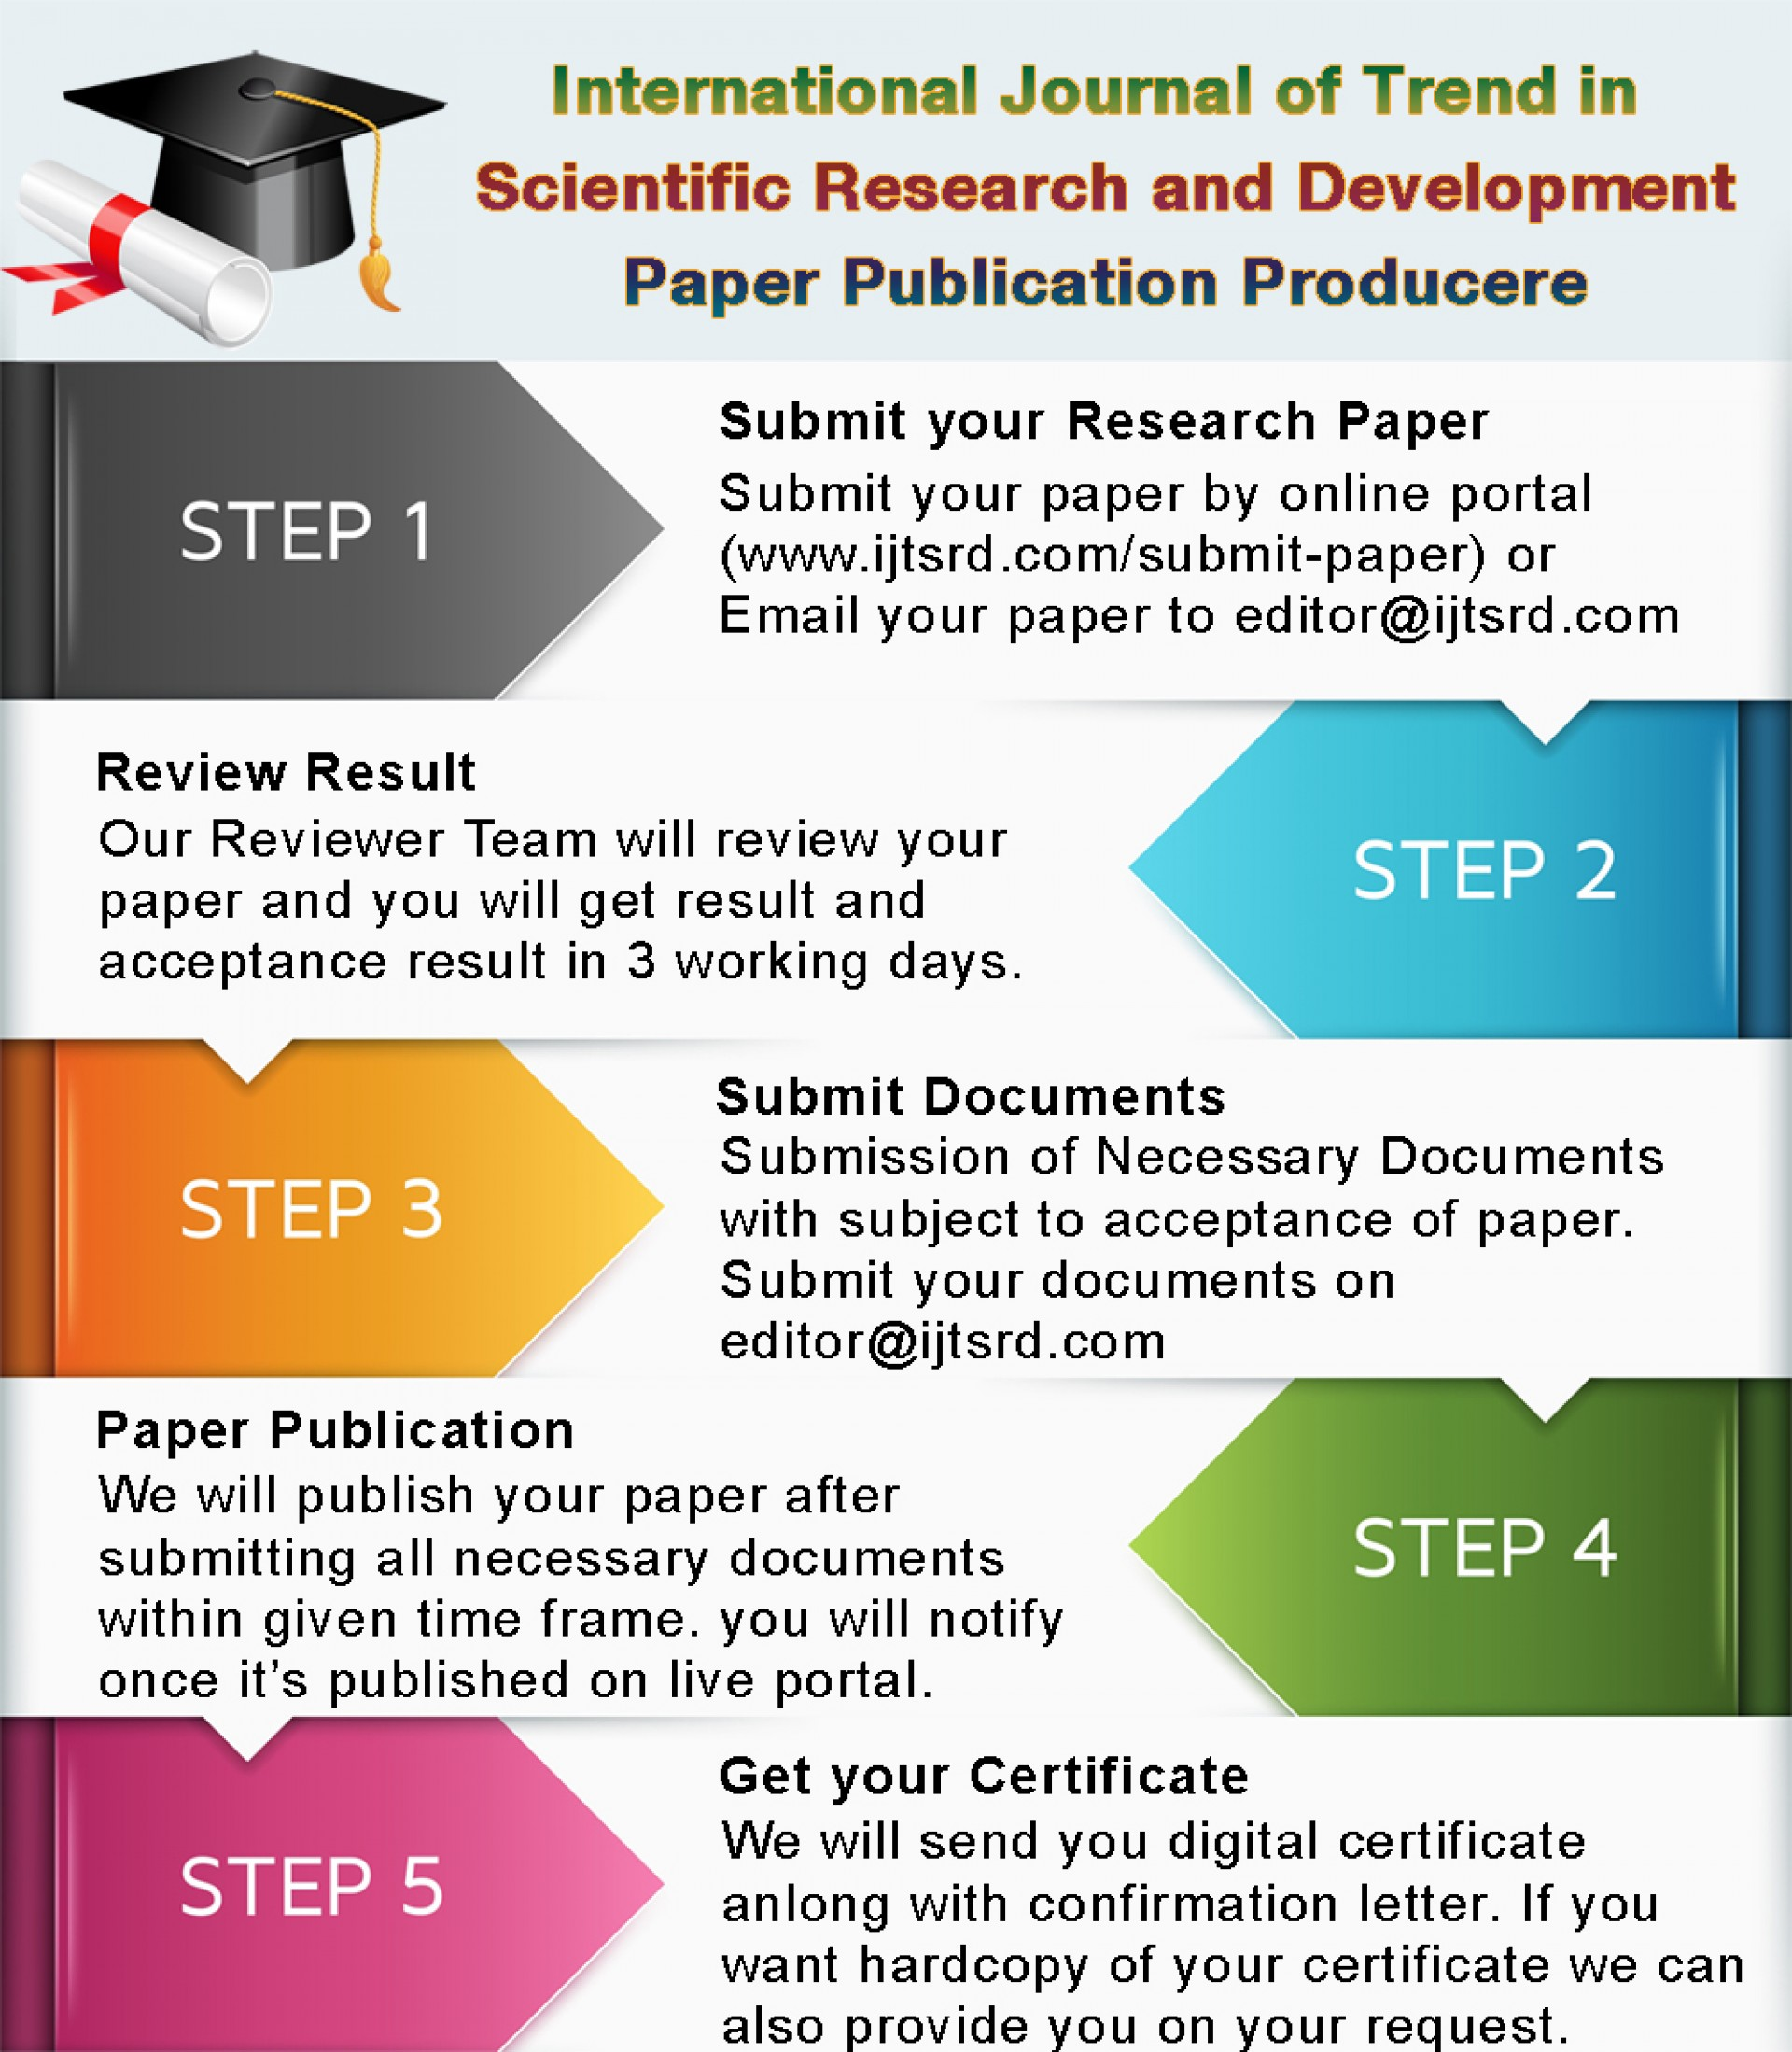 021 Ijtsrd Producere Research Paper Breathtaking Editor Free Editing Software On Text 1920